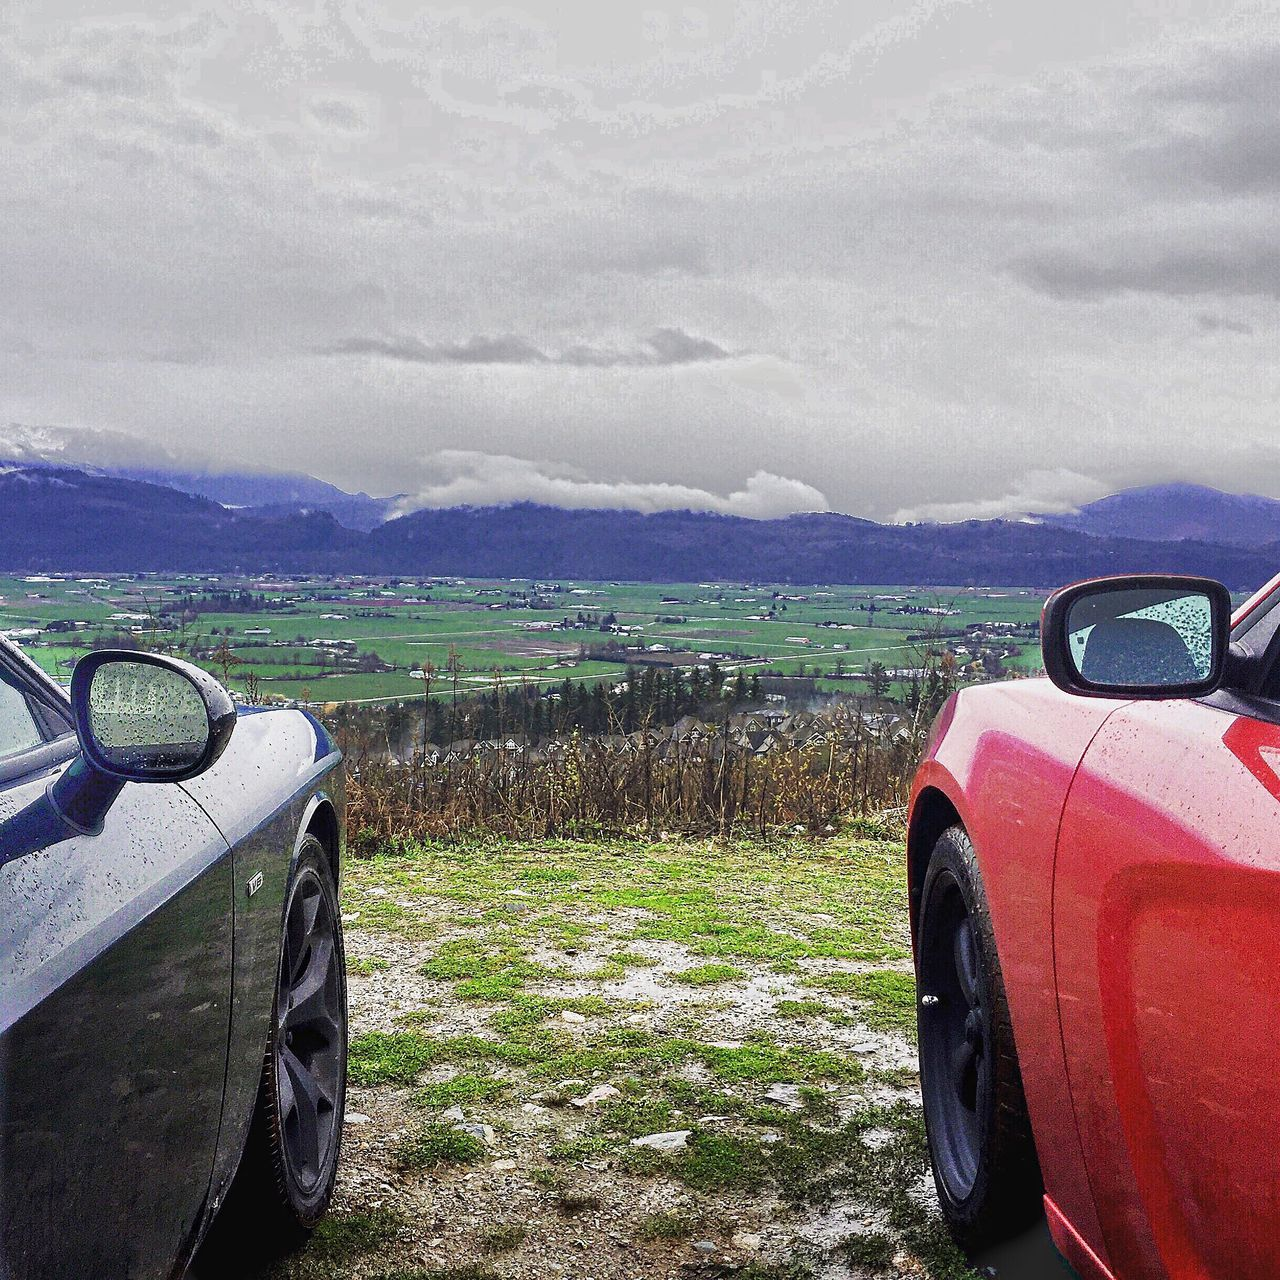 Two Mopars on top of the world Scenics Landscape Car Beauty In Nature No People Mountain Cloud - Sky Day Grass Outdoors Moparornocar Chargerfam Modernmuscle Dodgecharger Charger Weather Moparfam Mopar Rallye Sxt Dodge Mountainview Muscle Cars Mountain Range Moparlove